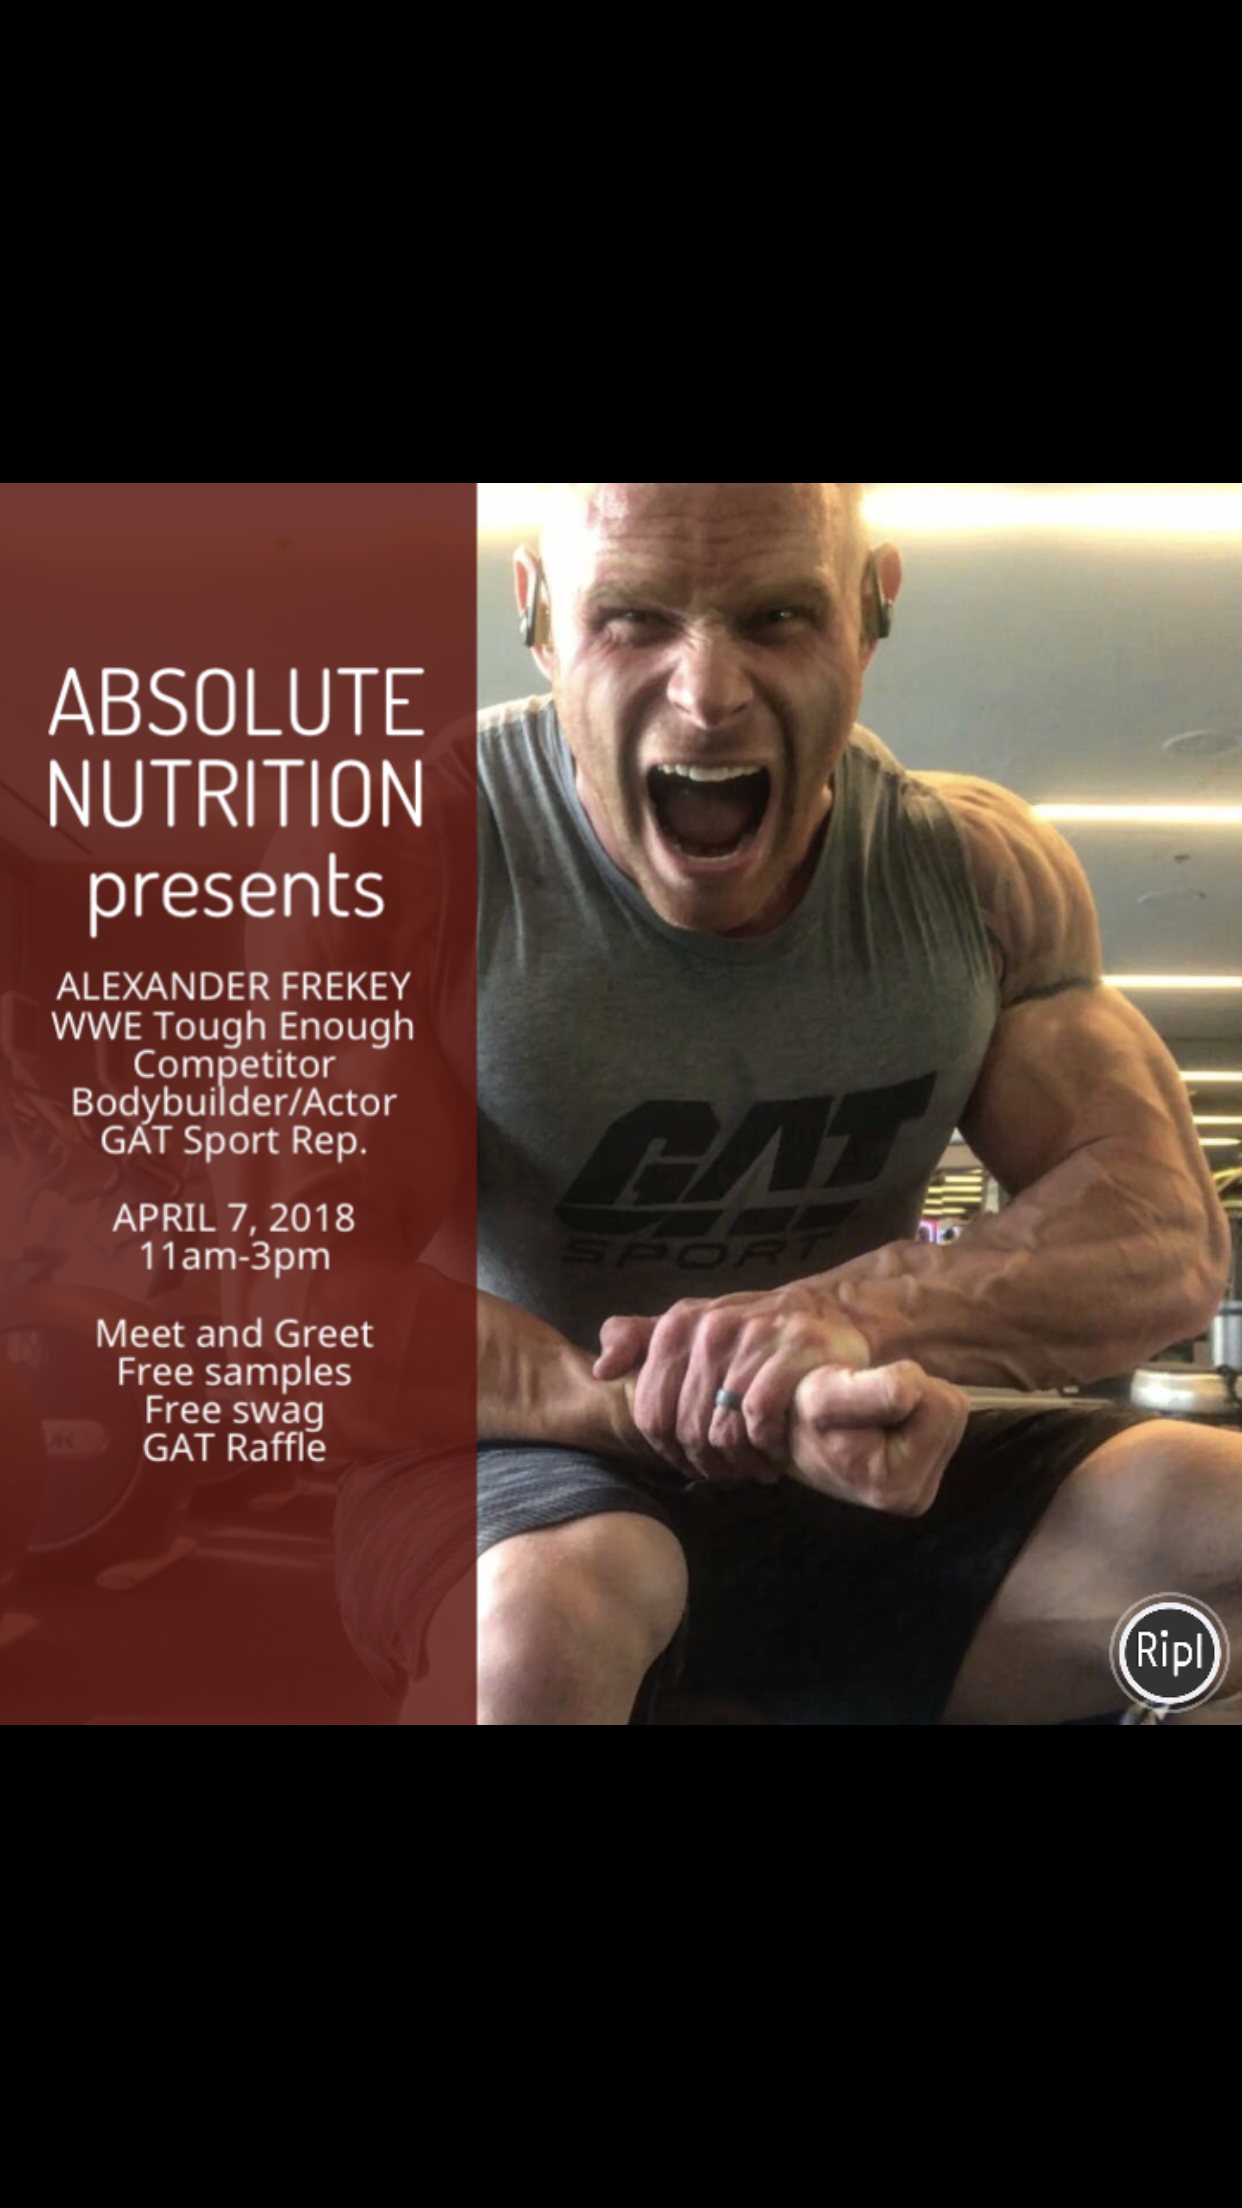 Fitness Event at Absolute Nutrition